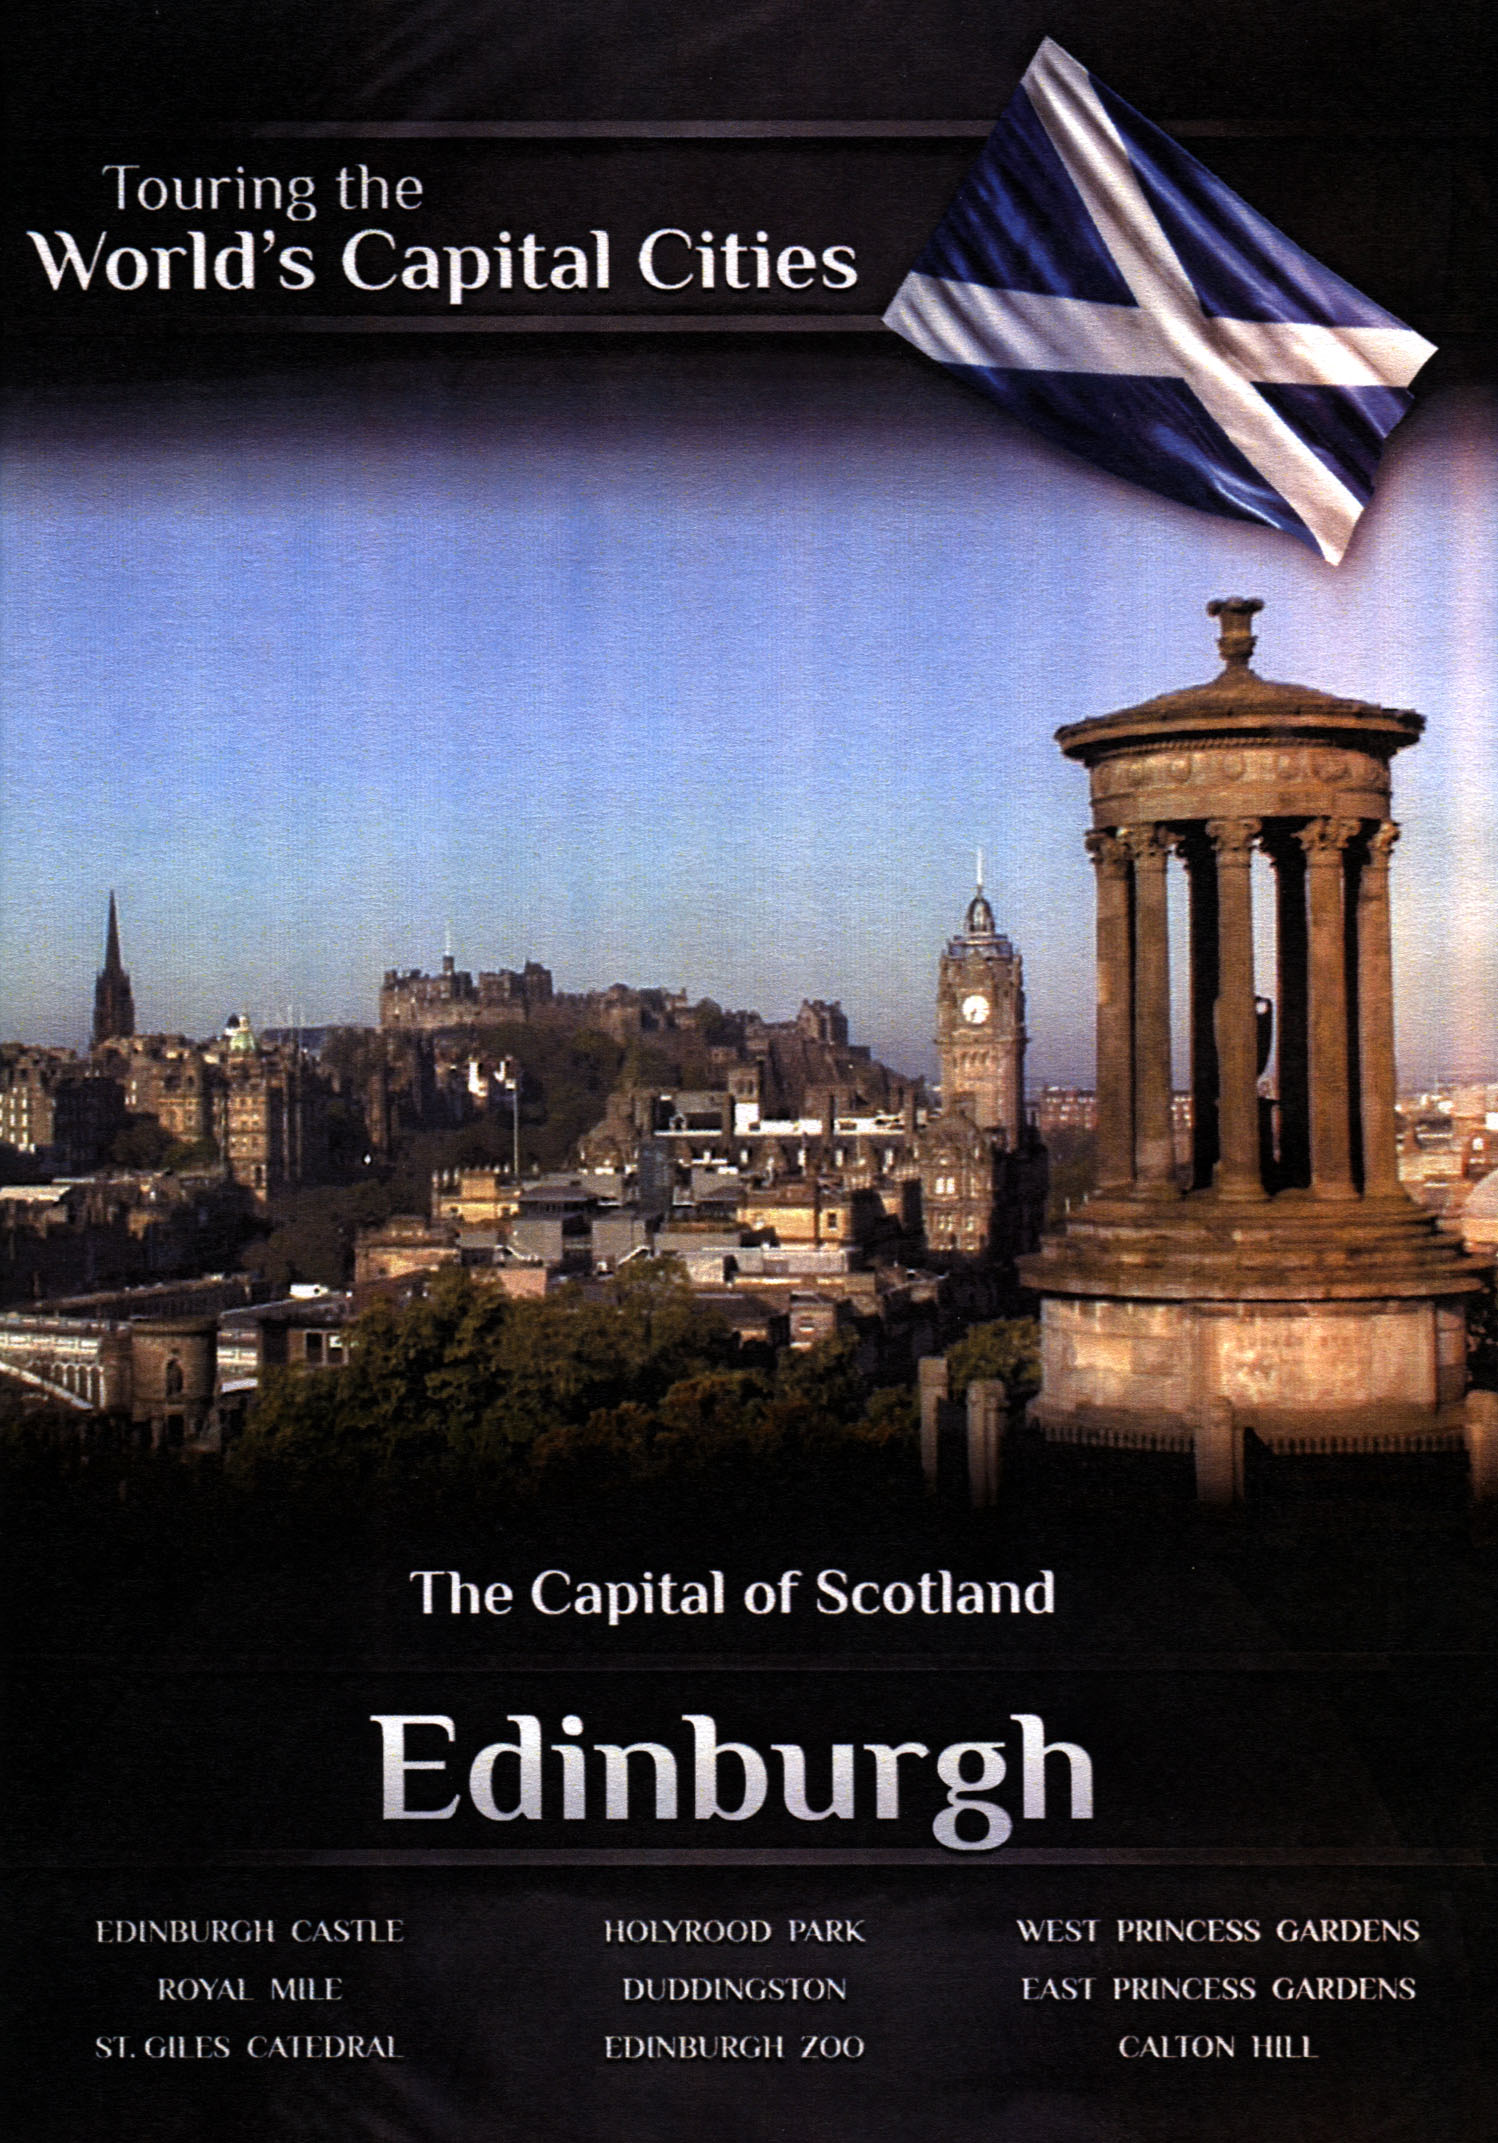 Touring the World's Capital Cities: The Capital of Scotland - Edinburgh